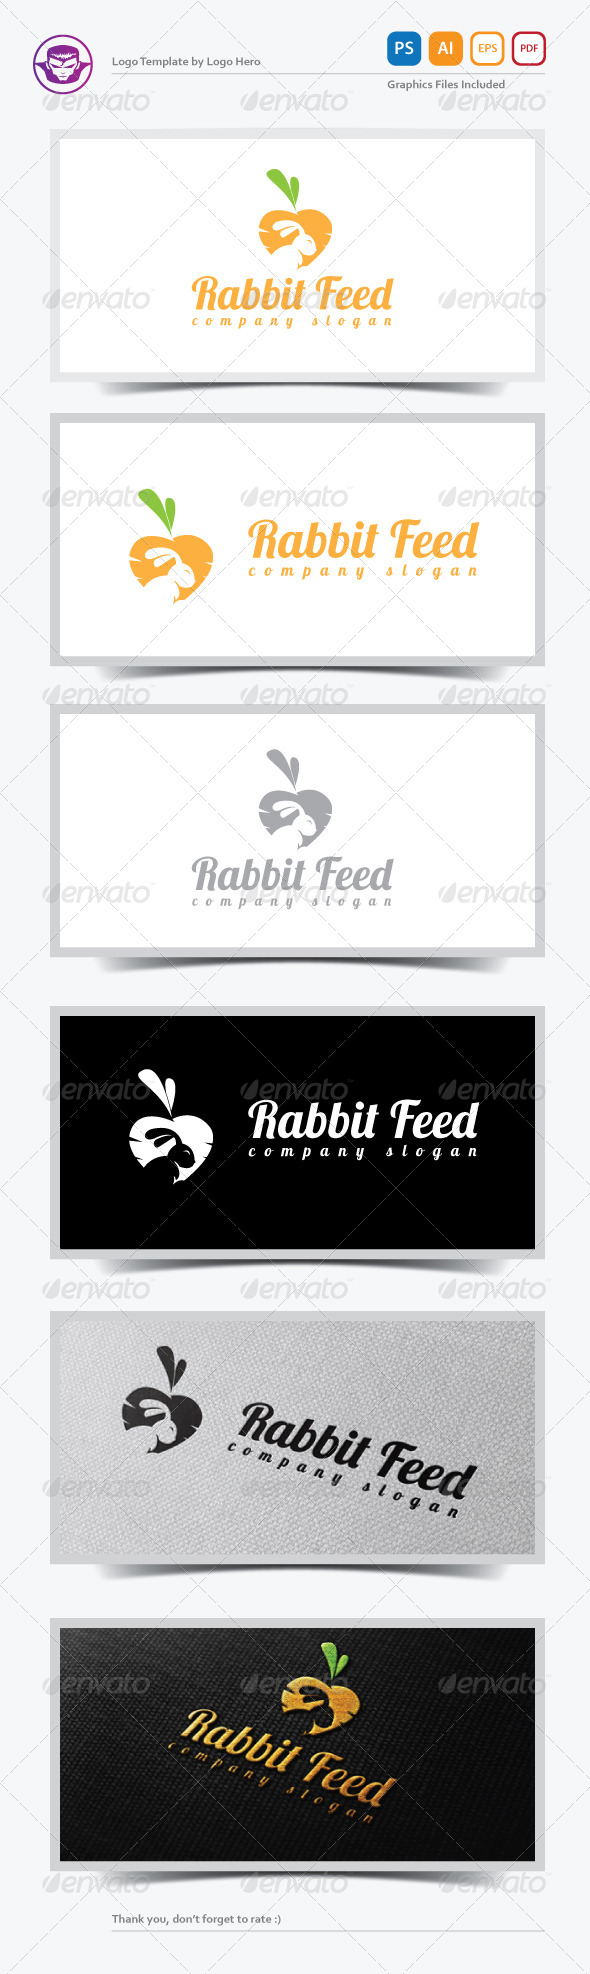 GraphicRiver Rabbit Feed Logo Template 5369045